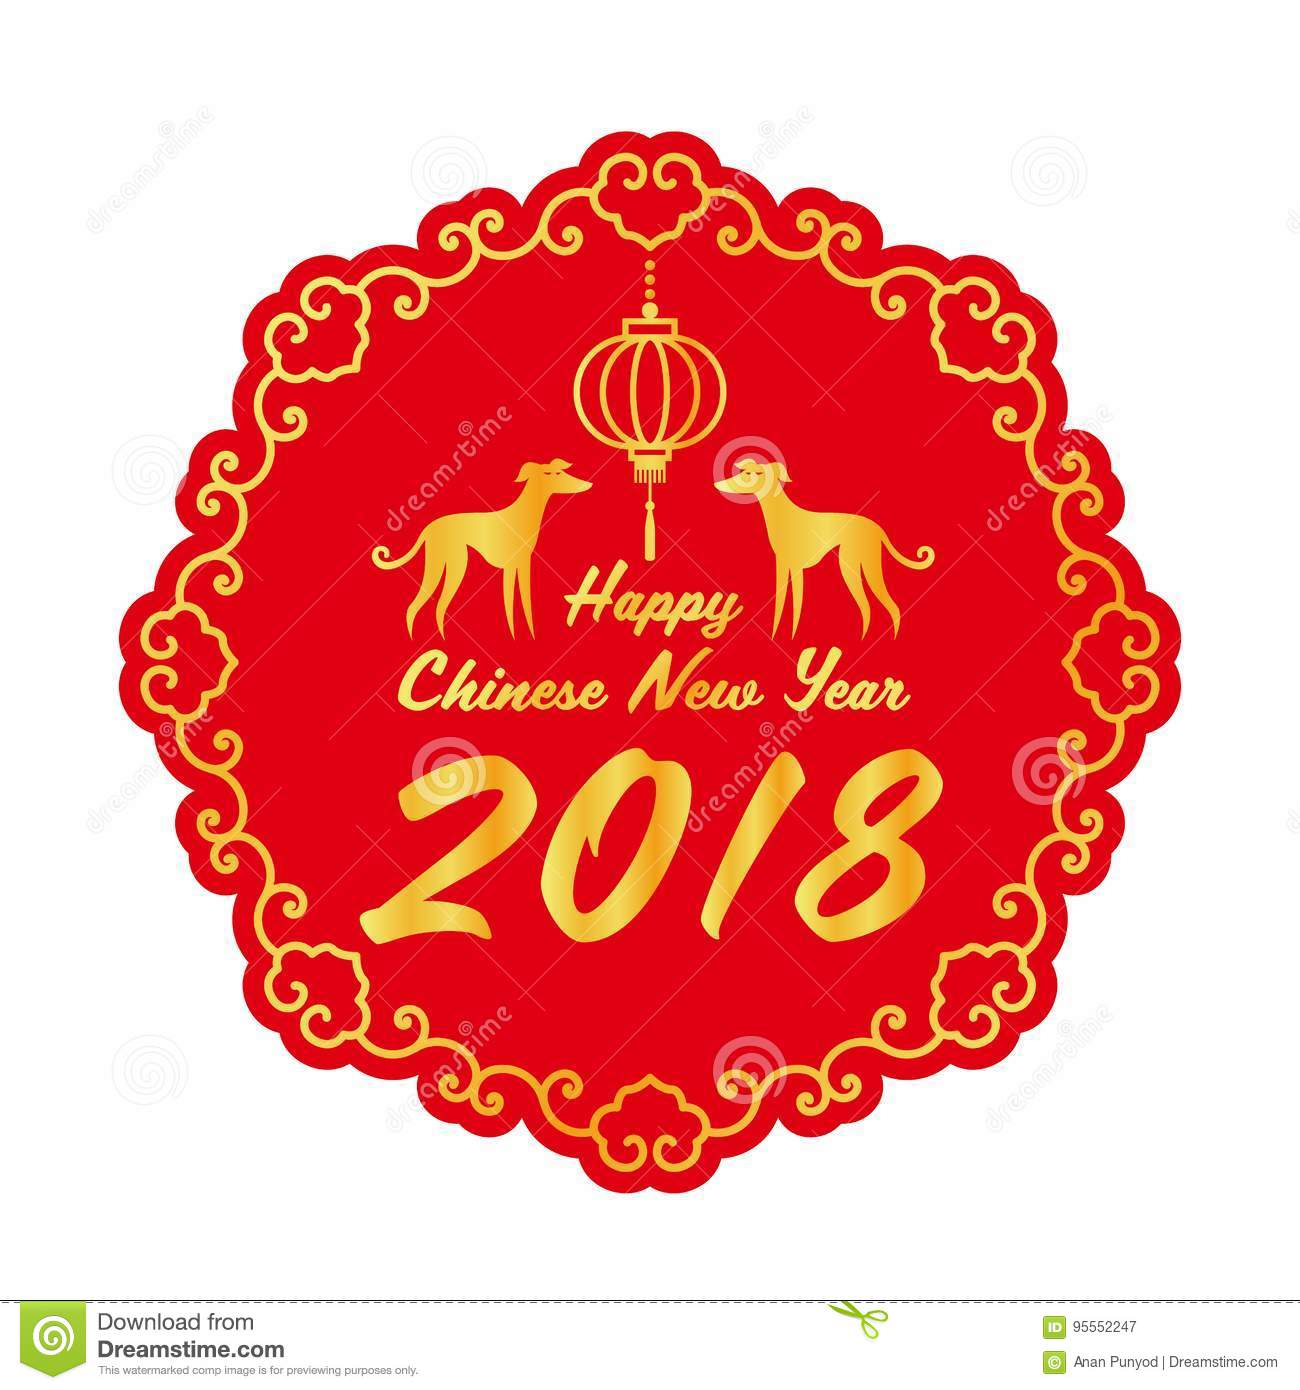 circle banner for happy chinese new year 2018 with dog zodiact and lantern vector design